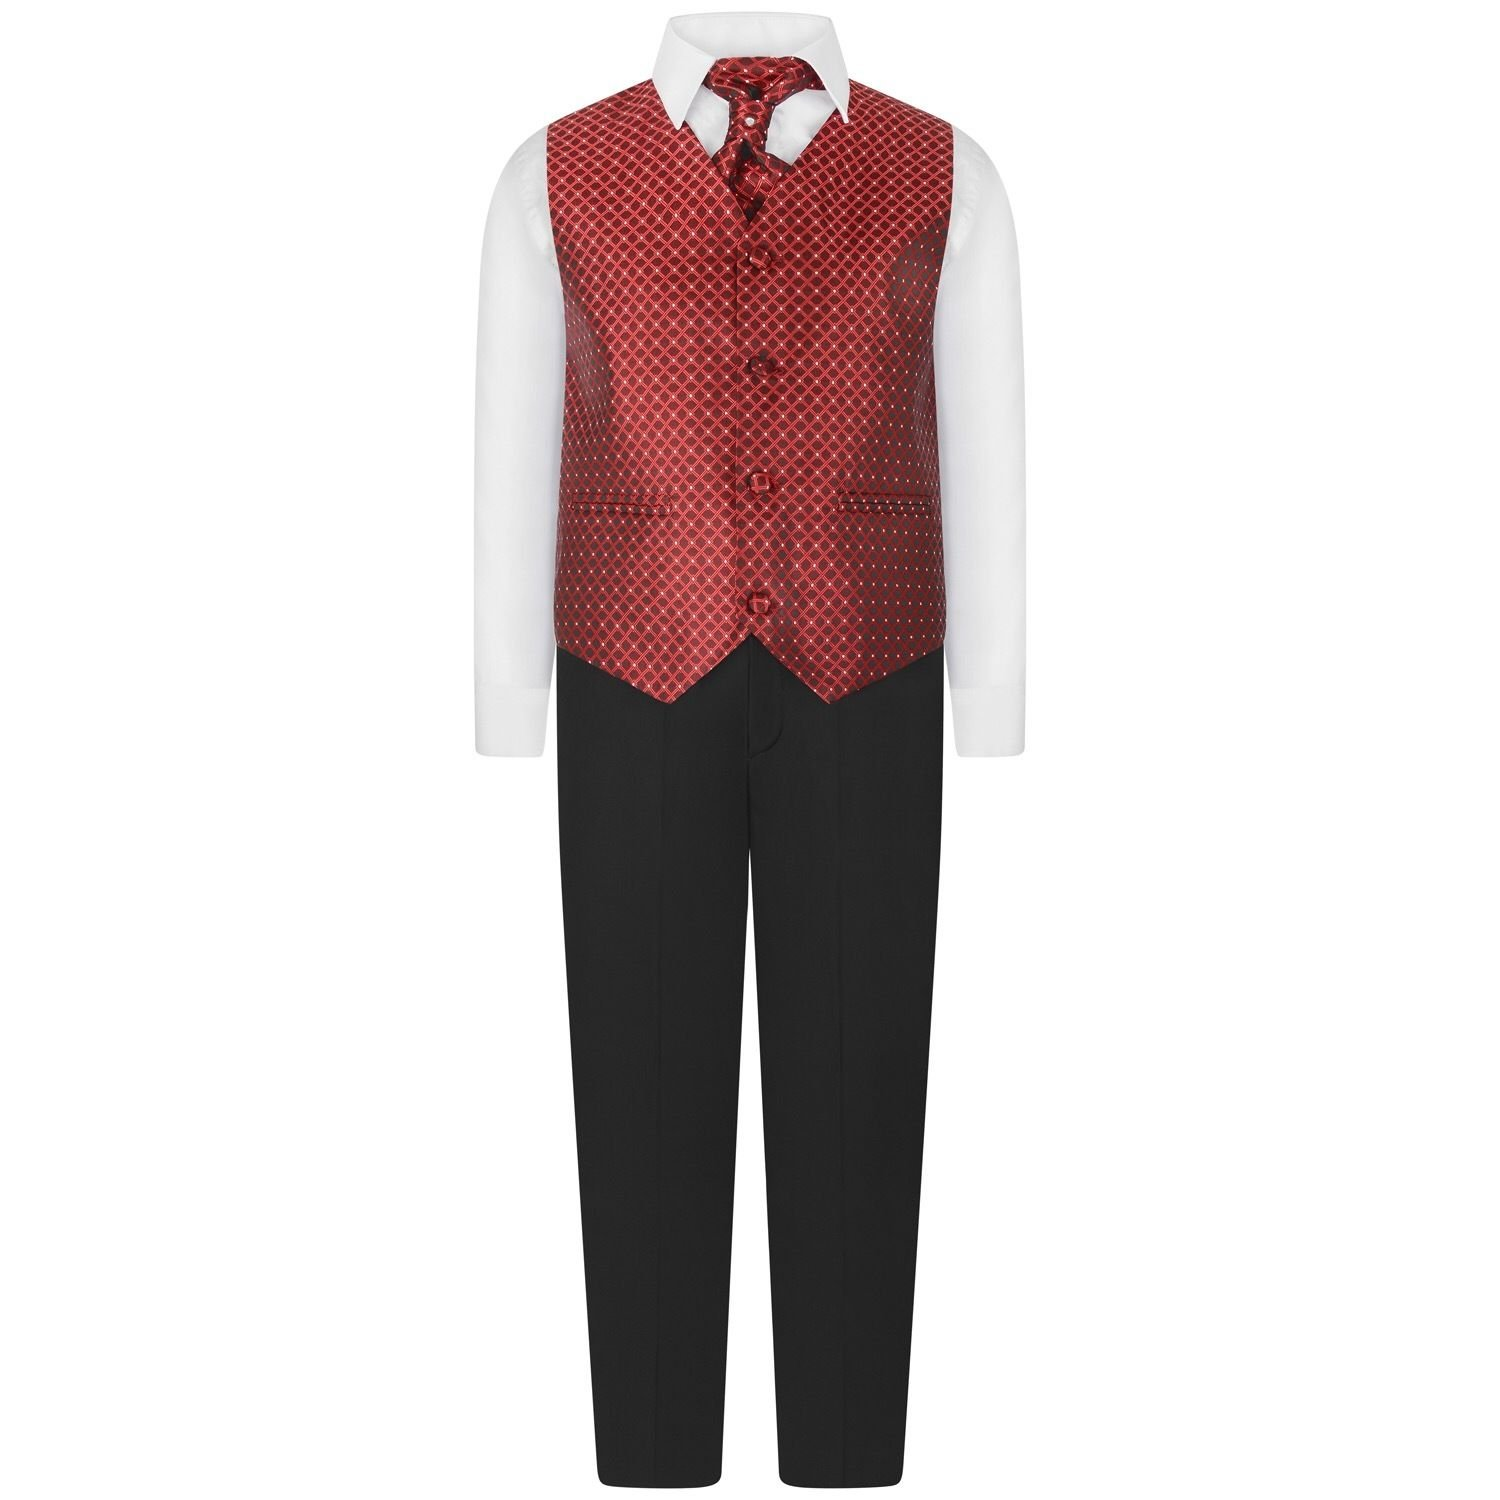 Boys 4 Peice Wine Waiscoat Suit Set Smart Suit Cravat Tie Ages 6 Months up to 10 Years